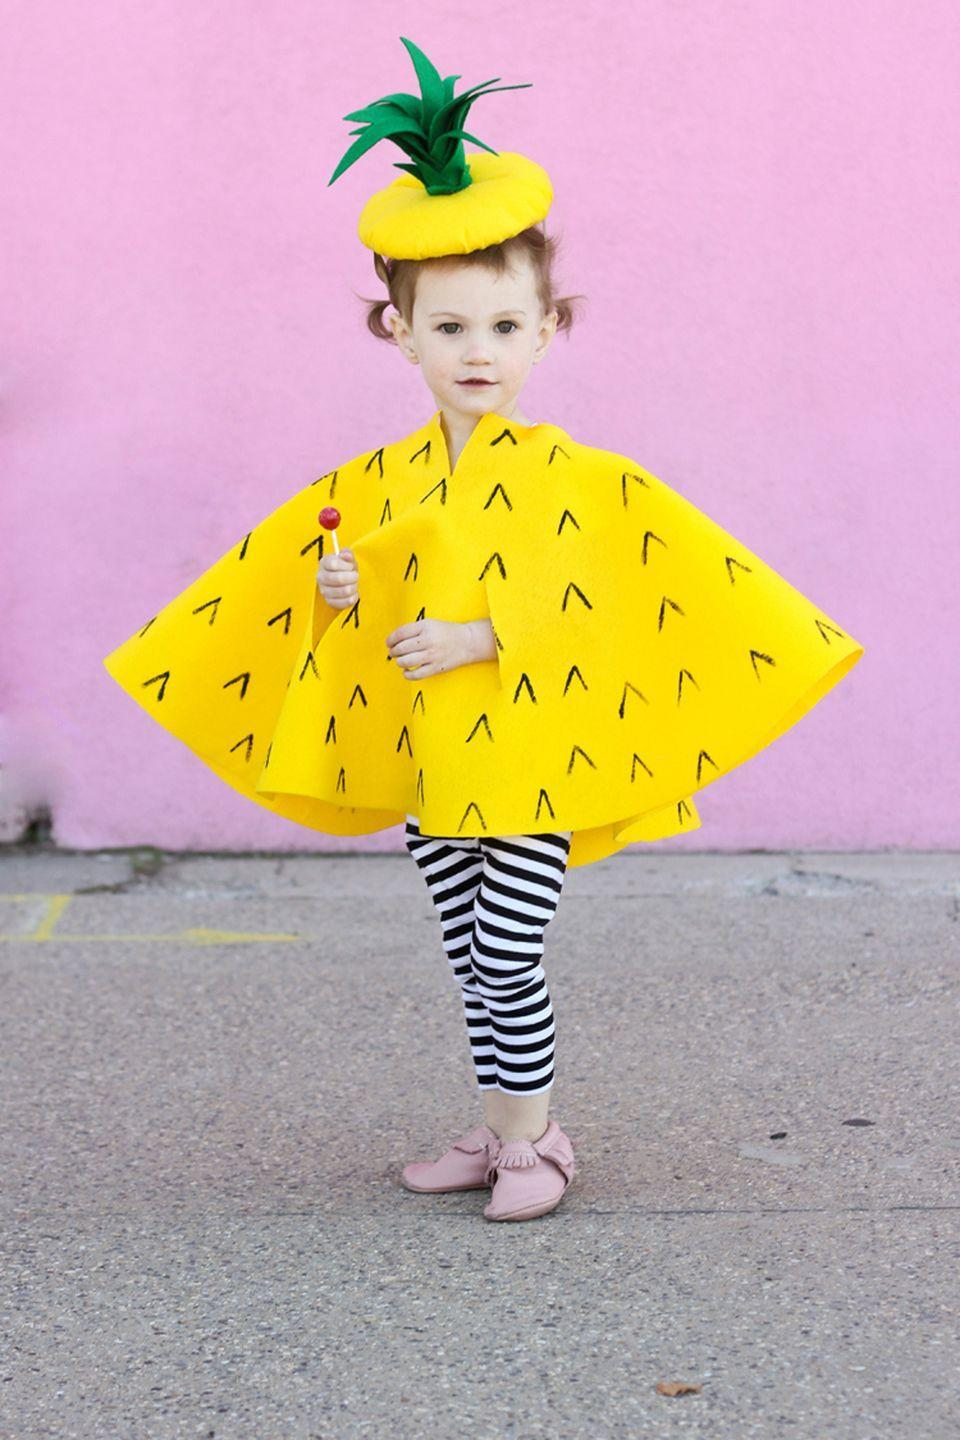 """<p><span>Her favorite fruit now comes in costume form. </span></p><p><strong>Get the tutorial at <a href=""""http://www.deliacreates.com/no-sew-pineapple-halloween-costume/"""" rel=""""nofollow noopener"""" target=""""_blank"""" data-ylk=""""slk:Delia Creates"""" class=""""link rapid-noclick-resp"""">Delia Creates</a>.</strong><br></p><p><strong><a class=""""link rapid-noclick-resp"""" href=""""https://www.amazon.com/Nu-Source-Inc-Premium-White-1001-72/dp/B004E5DTLY/?tag=syn-yahoo-20&ascsubtag=%5Bartid%7C10050.g.4975%5Bsrc%7Cyahoo-us"""" rel=""""nofollow noopener"""" target=""""_blank"""" data-ylk=""""slk:SHOP FELT"""">SHOP FELT</a></strong></p>"""